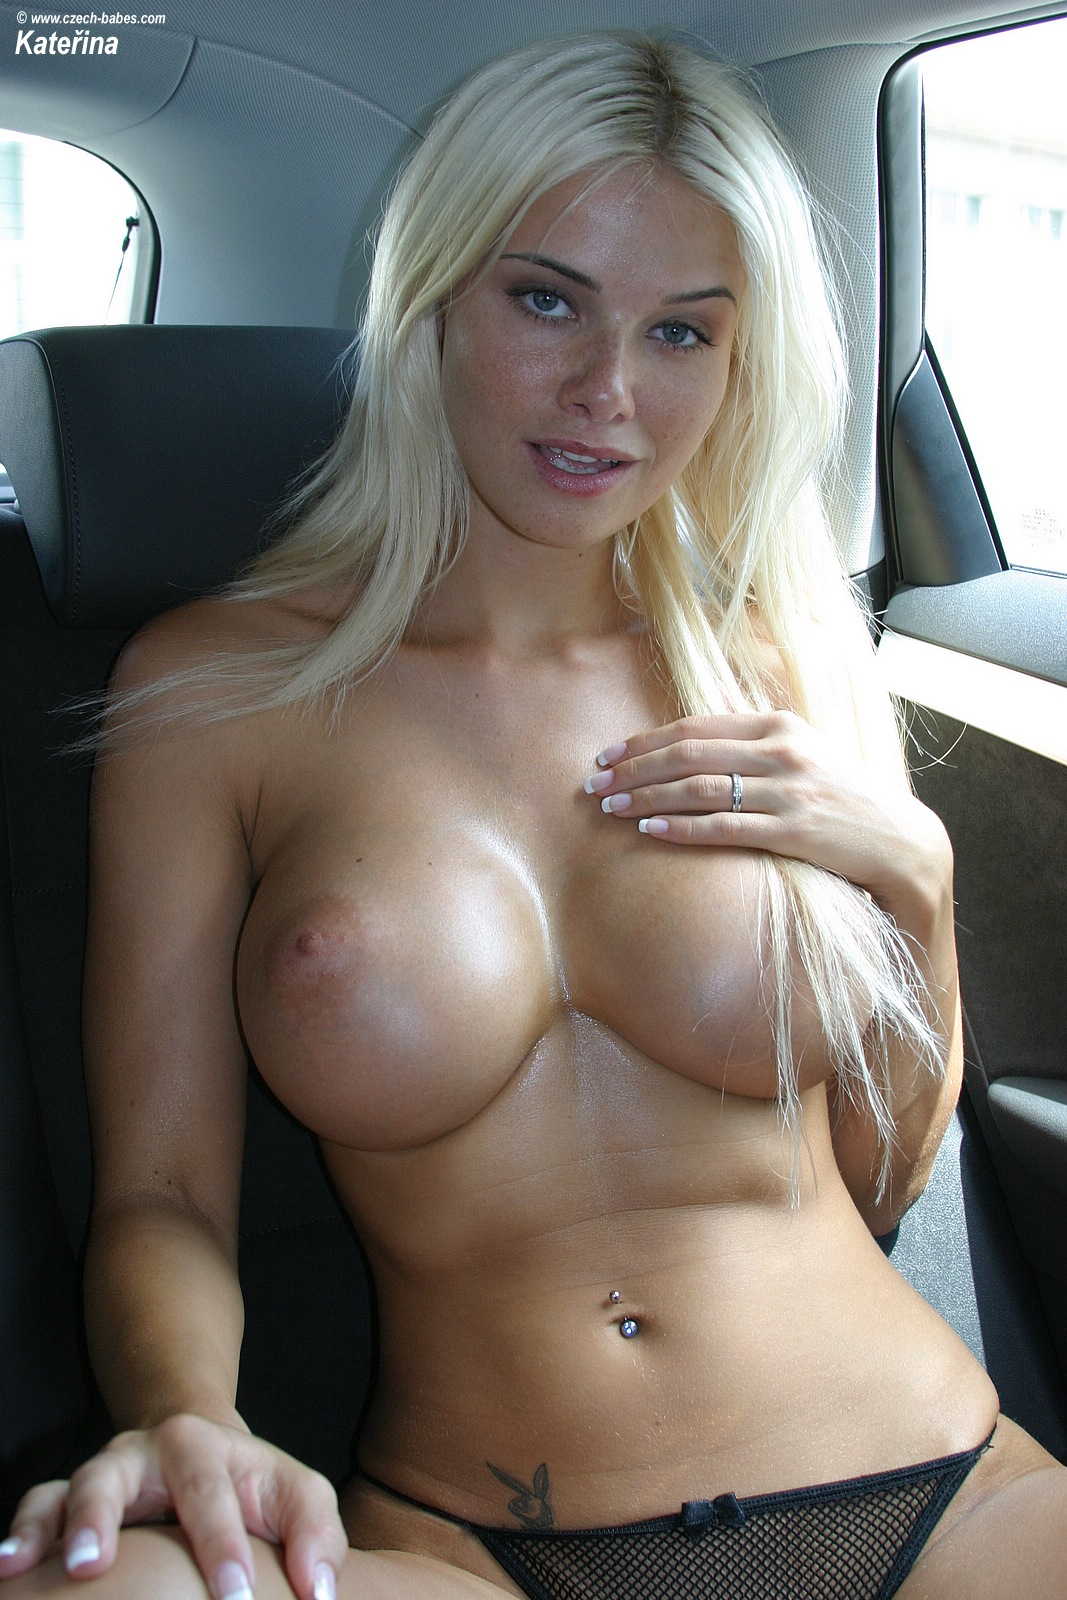 katerina-boobs-car-nude-czech-babes-12